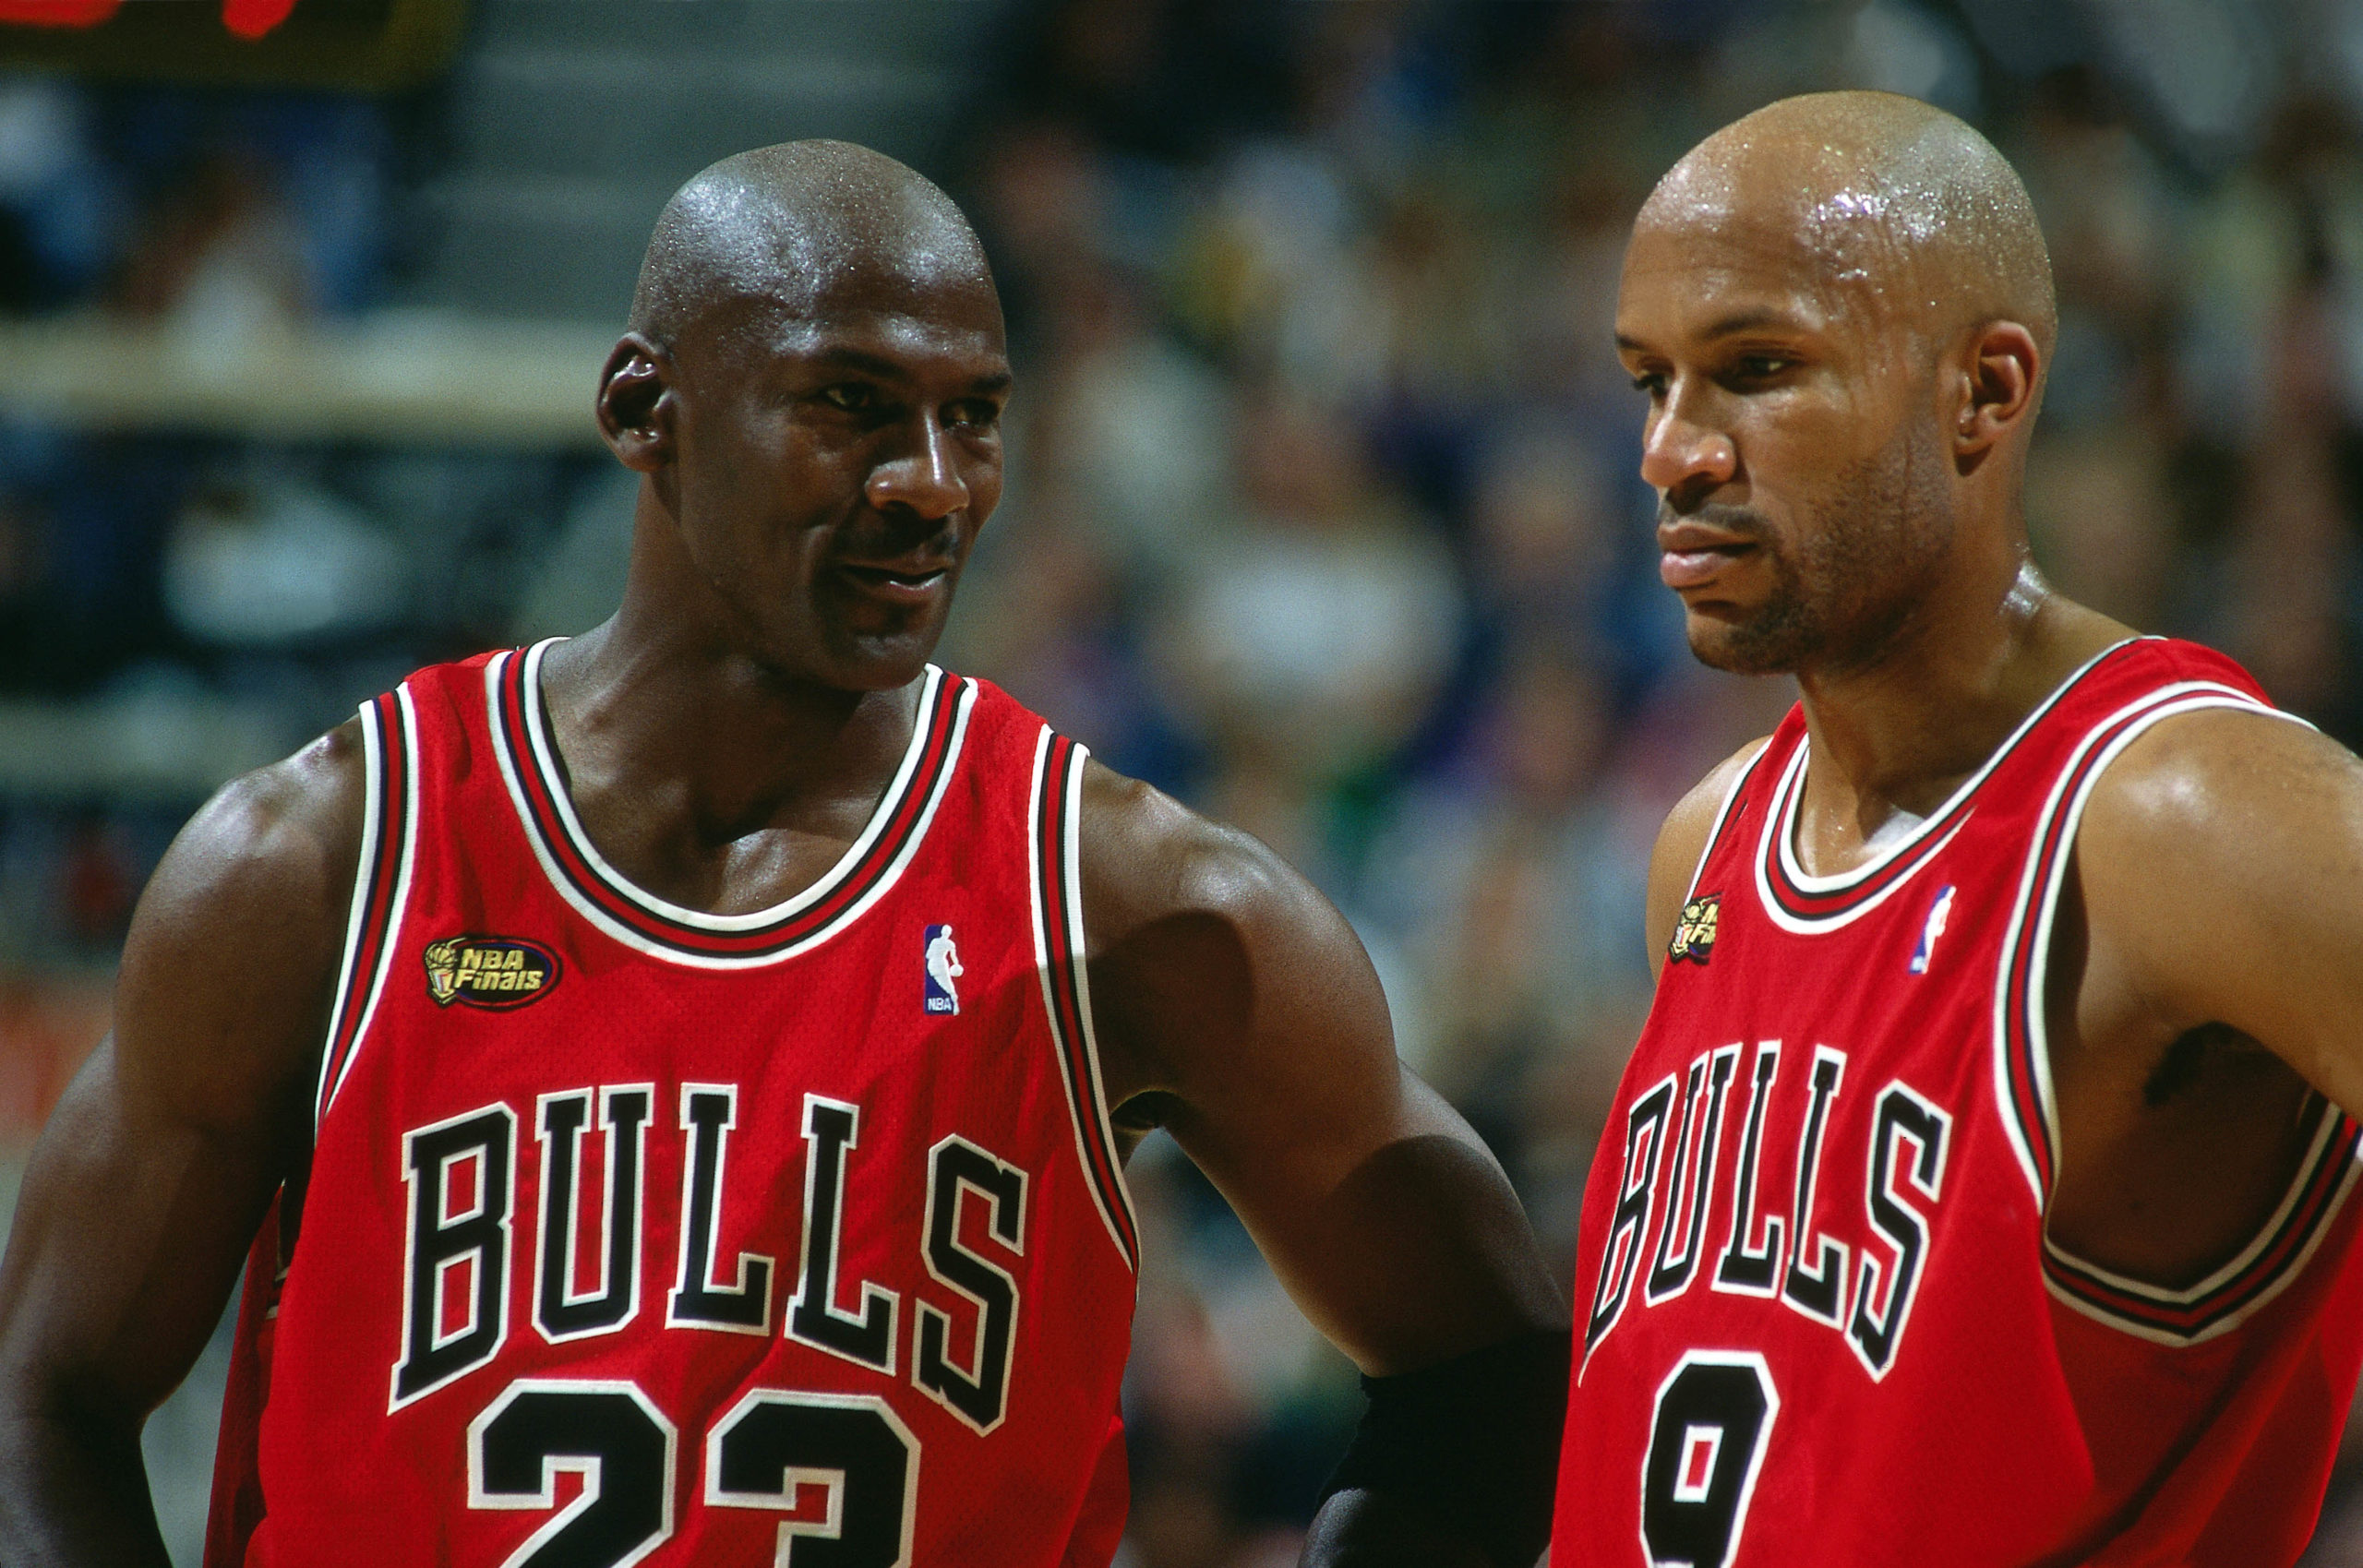 """Ron Harper's Reaction To Being Pulled Off Michael Jordan Before """"The Shot"""""""